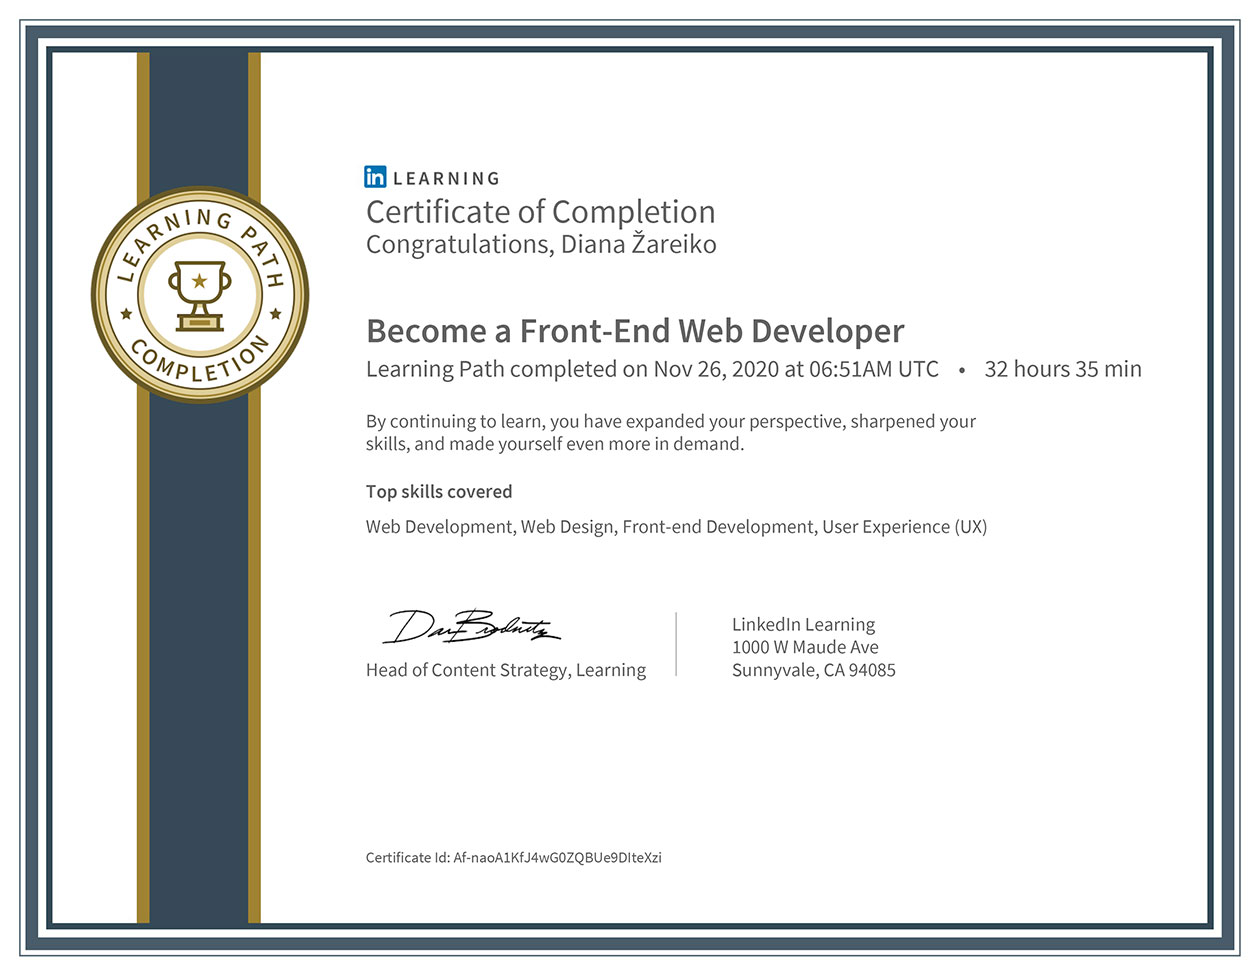 Diana-Zareiko-Front-end-Developer-Certification-Linda